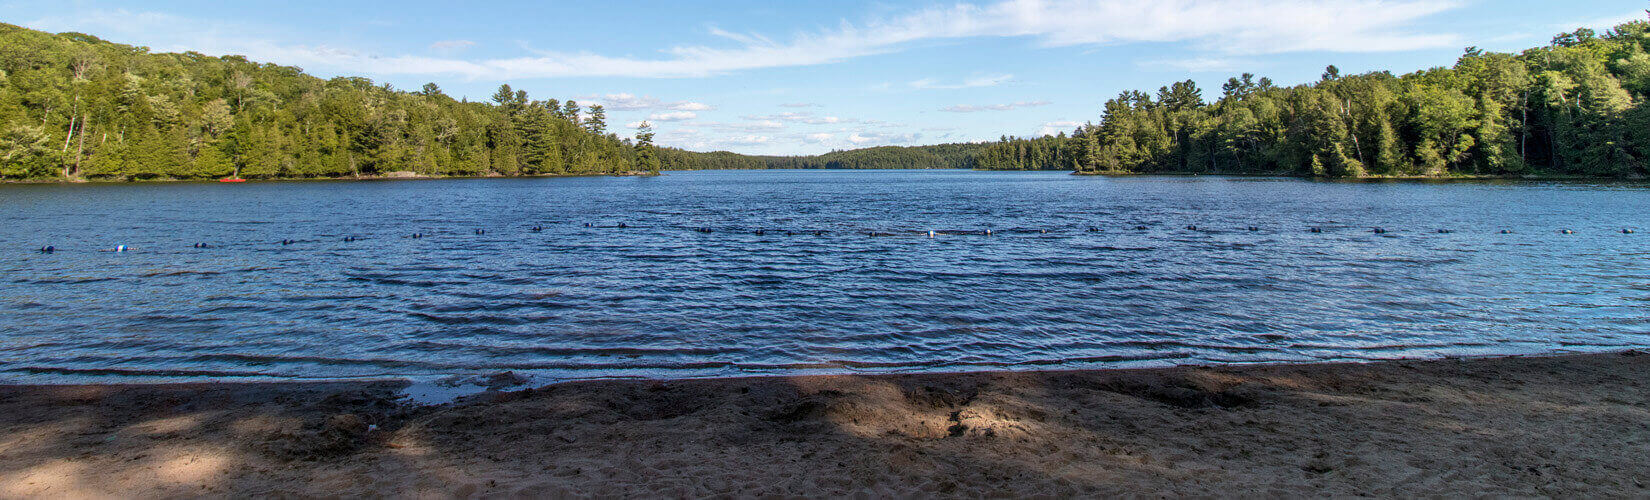 Silent Lake Provincial Park Cabins + Things to Do For An Epic Visit :: I've Been Bit! Travel Blog